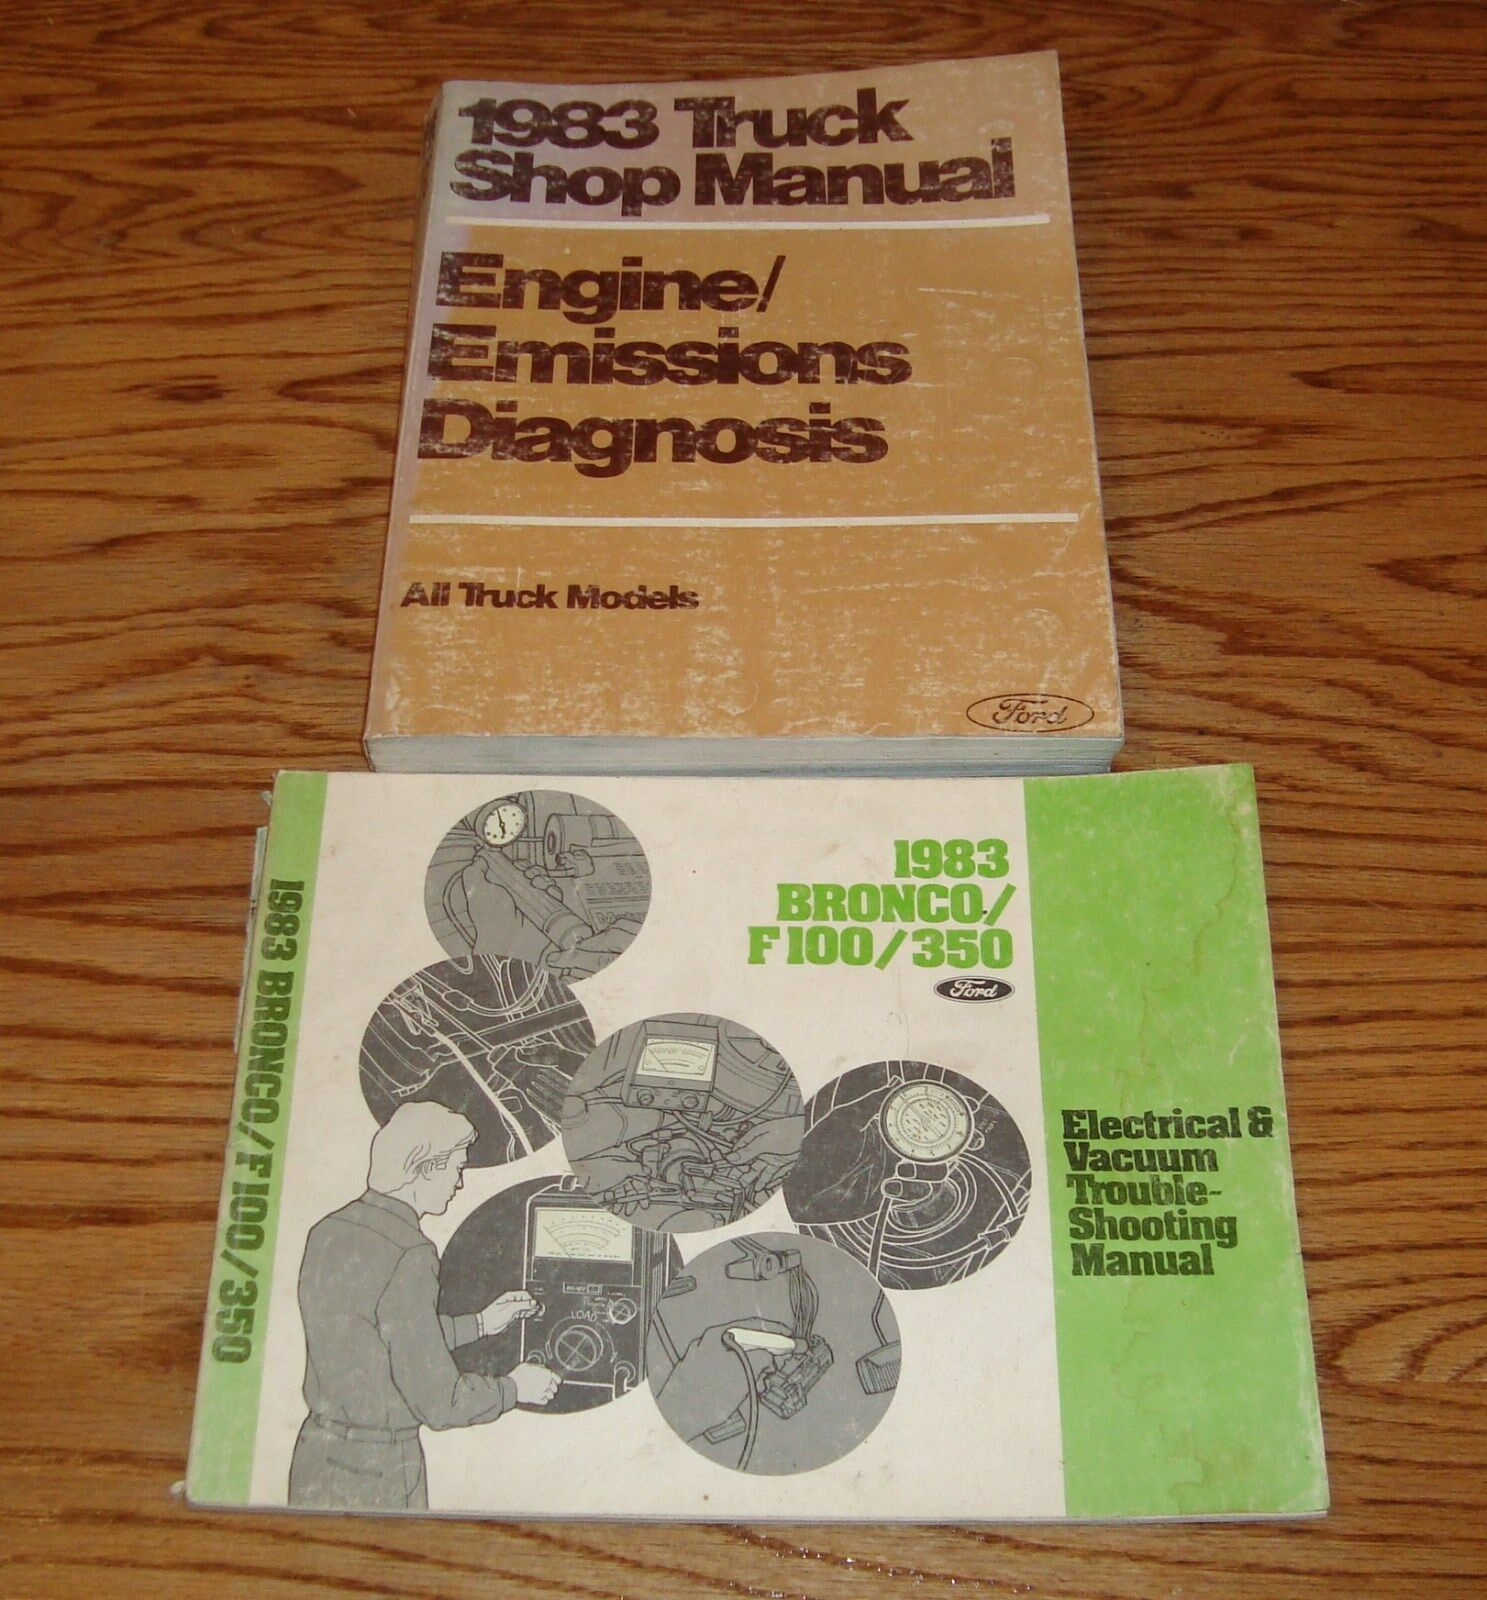 1983 Ford Truck Shop Service Manual + Bronco F100/350 Wiring Diagram Set 83  1 of 1Only 1 available ...